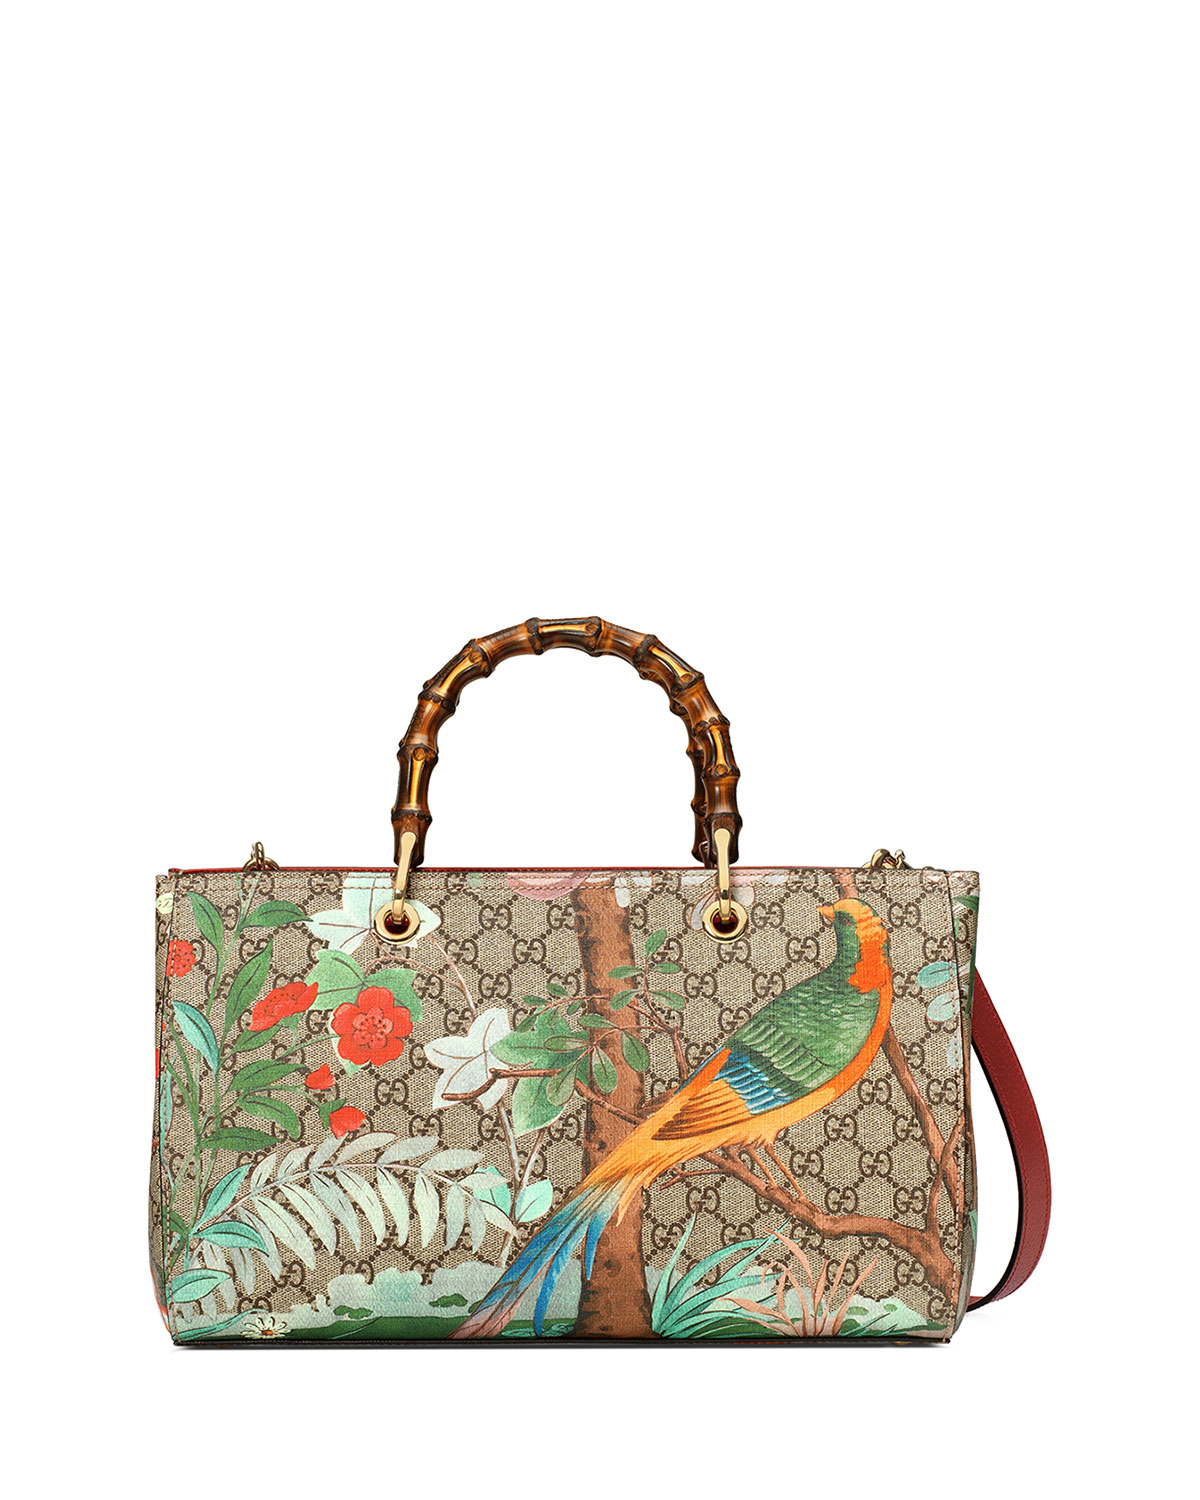 a7781f71e881cf Gucci Tian Floral GG-Supreme Shopper Tote Bag, Multicolor | Neiman ...